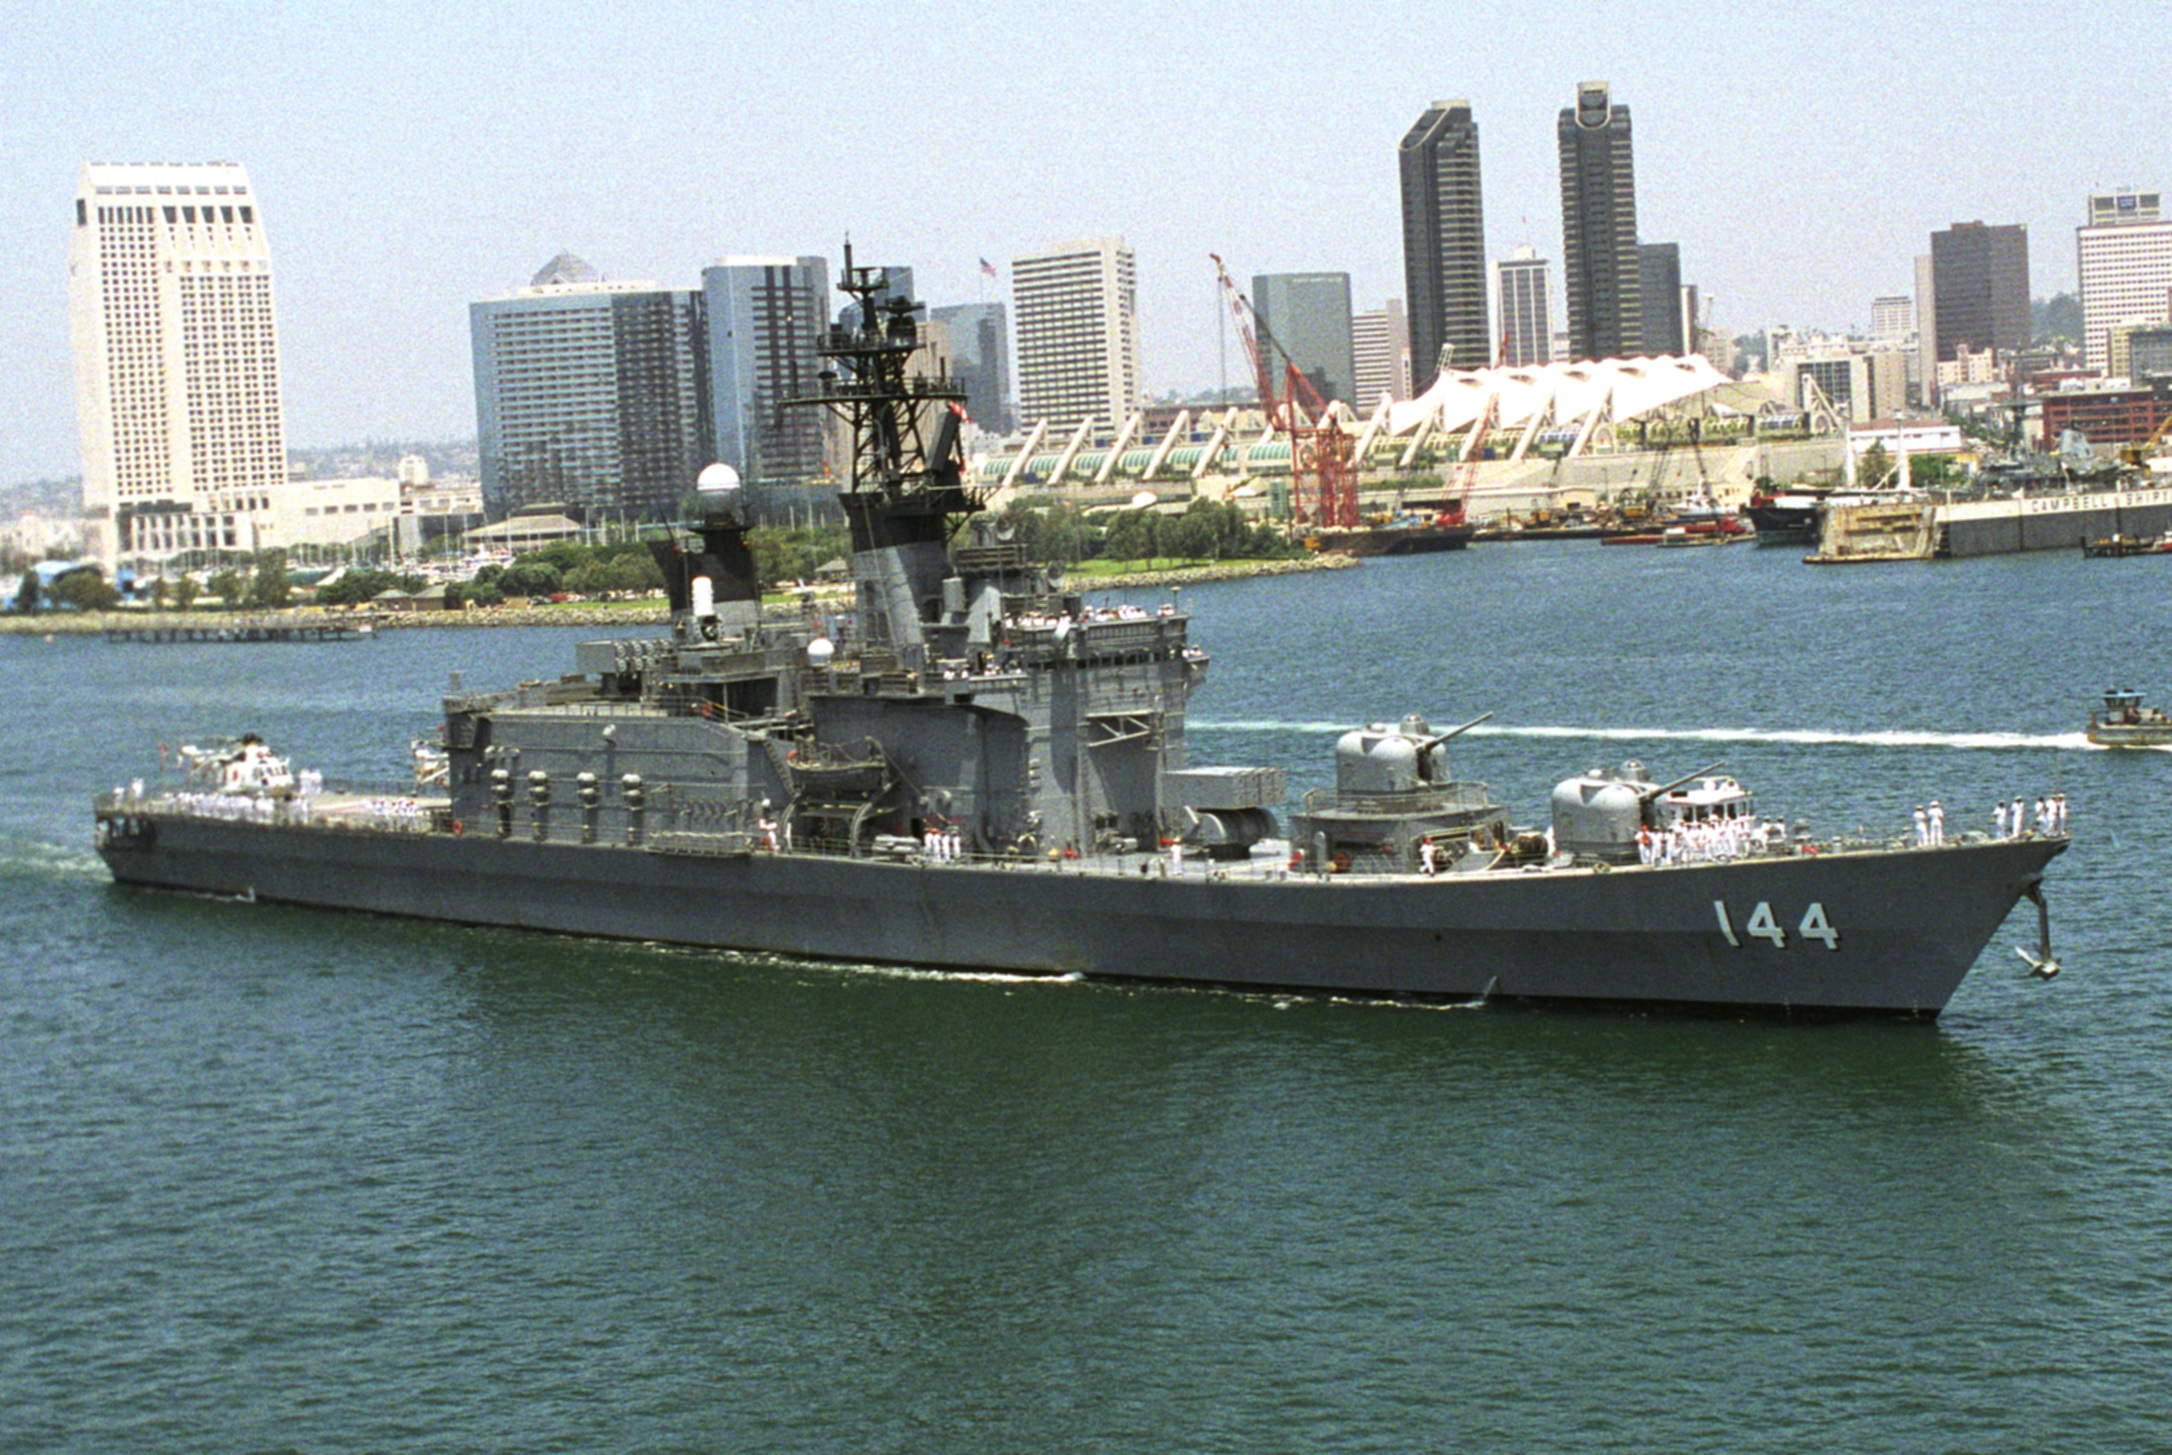 http://upload.wikimedia.org/wikipedia/commons/6/6f/Shirane_class_destroyer_-_Kurama_%28cropped%29.jpg